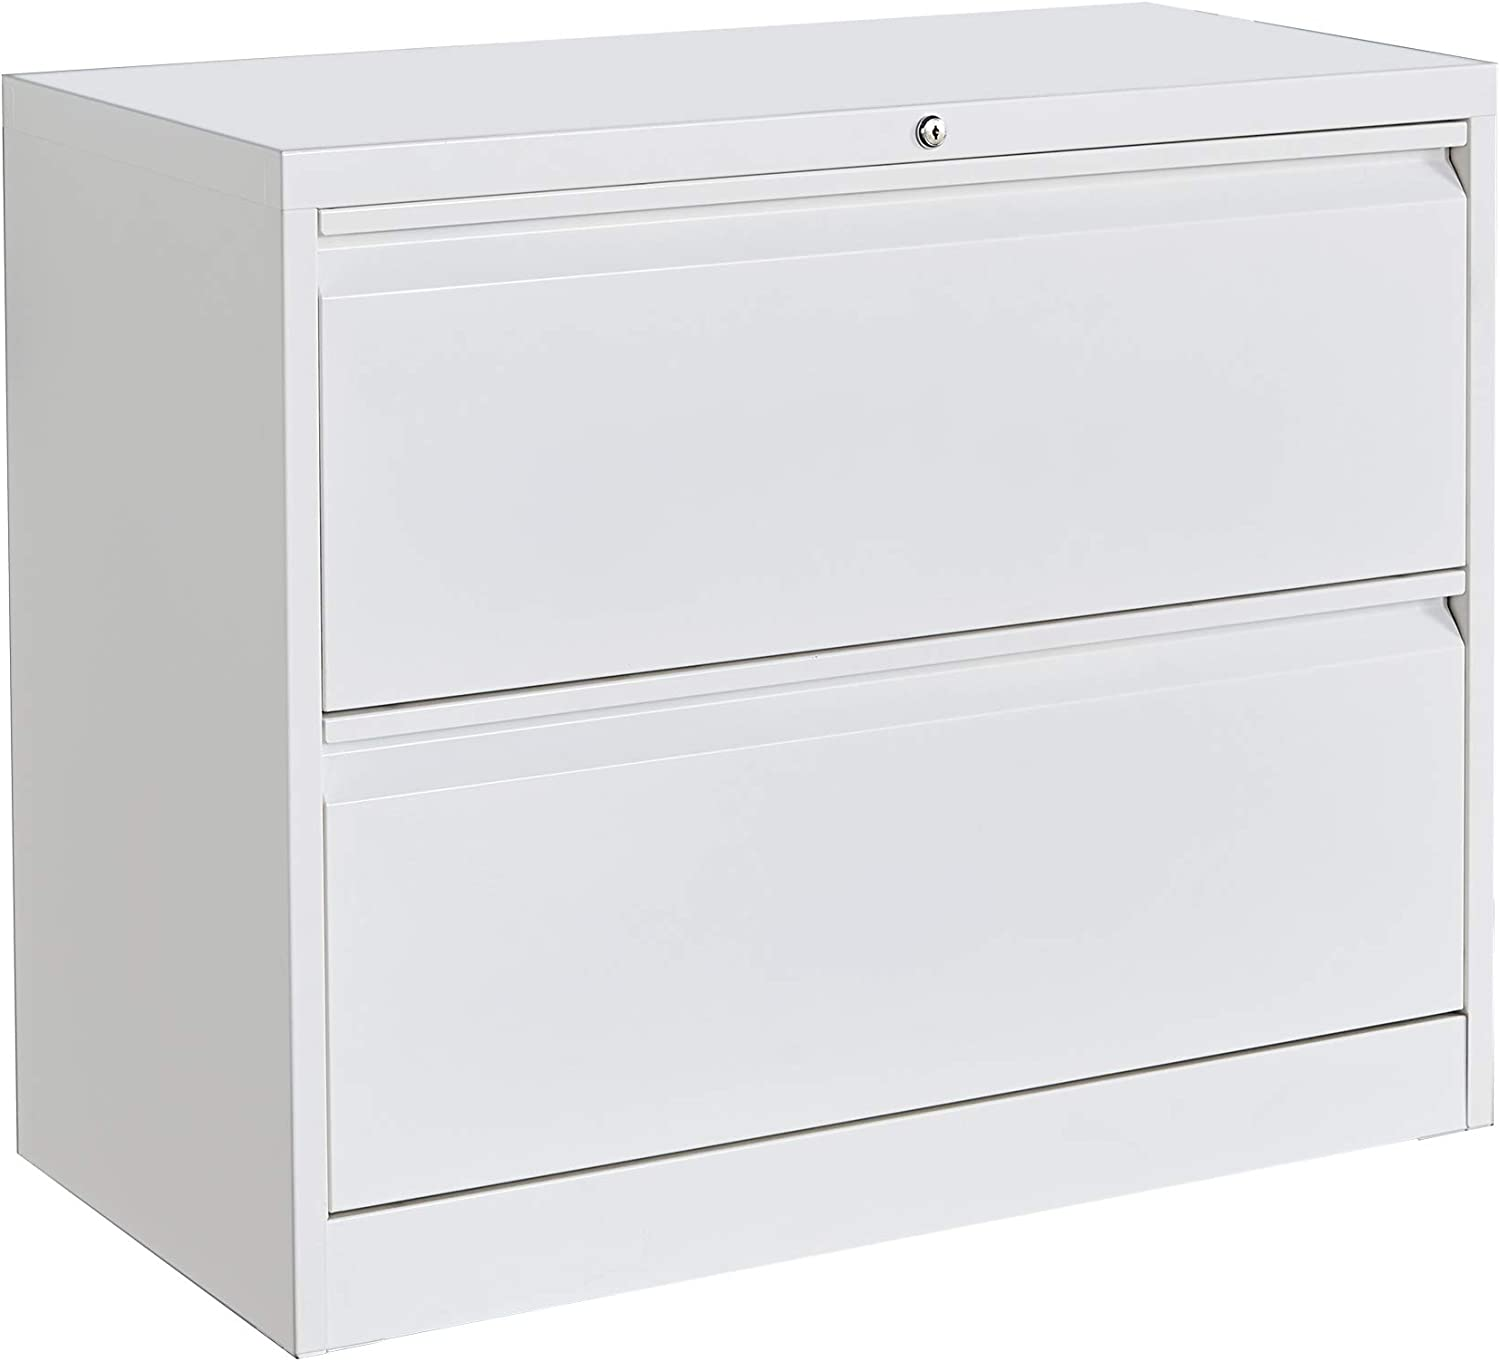 CAMORSA Lateral Filing Cabinet 2 inch safety Cheap SALE Start Cabi Drawers 35.43